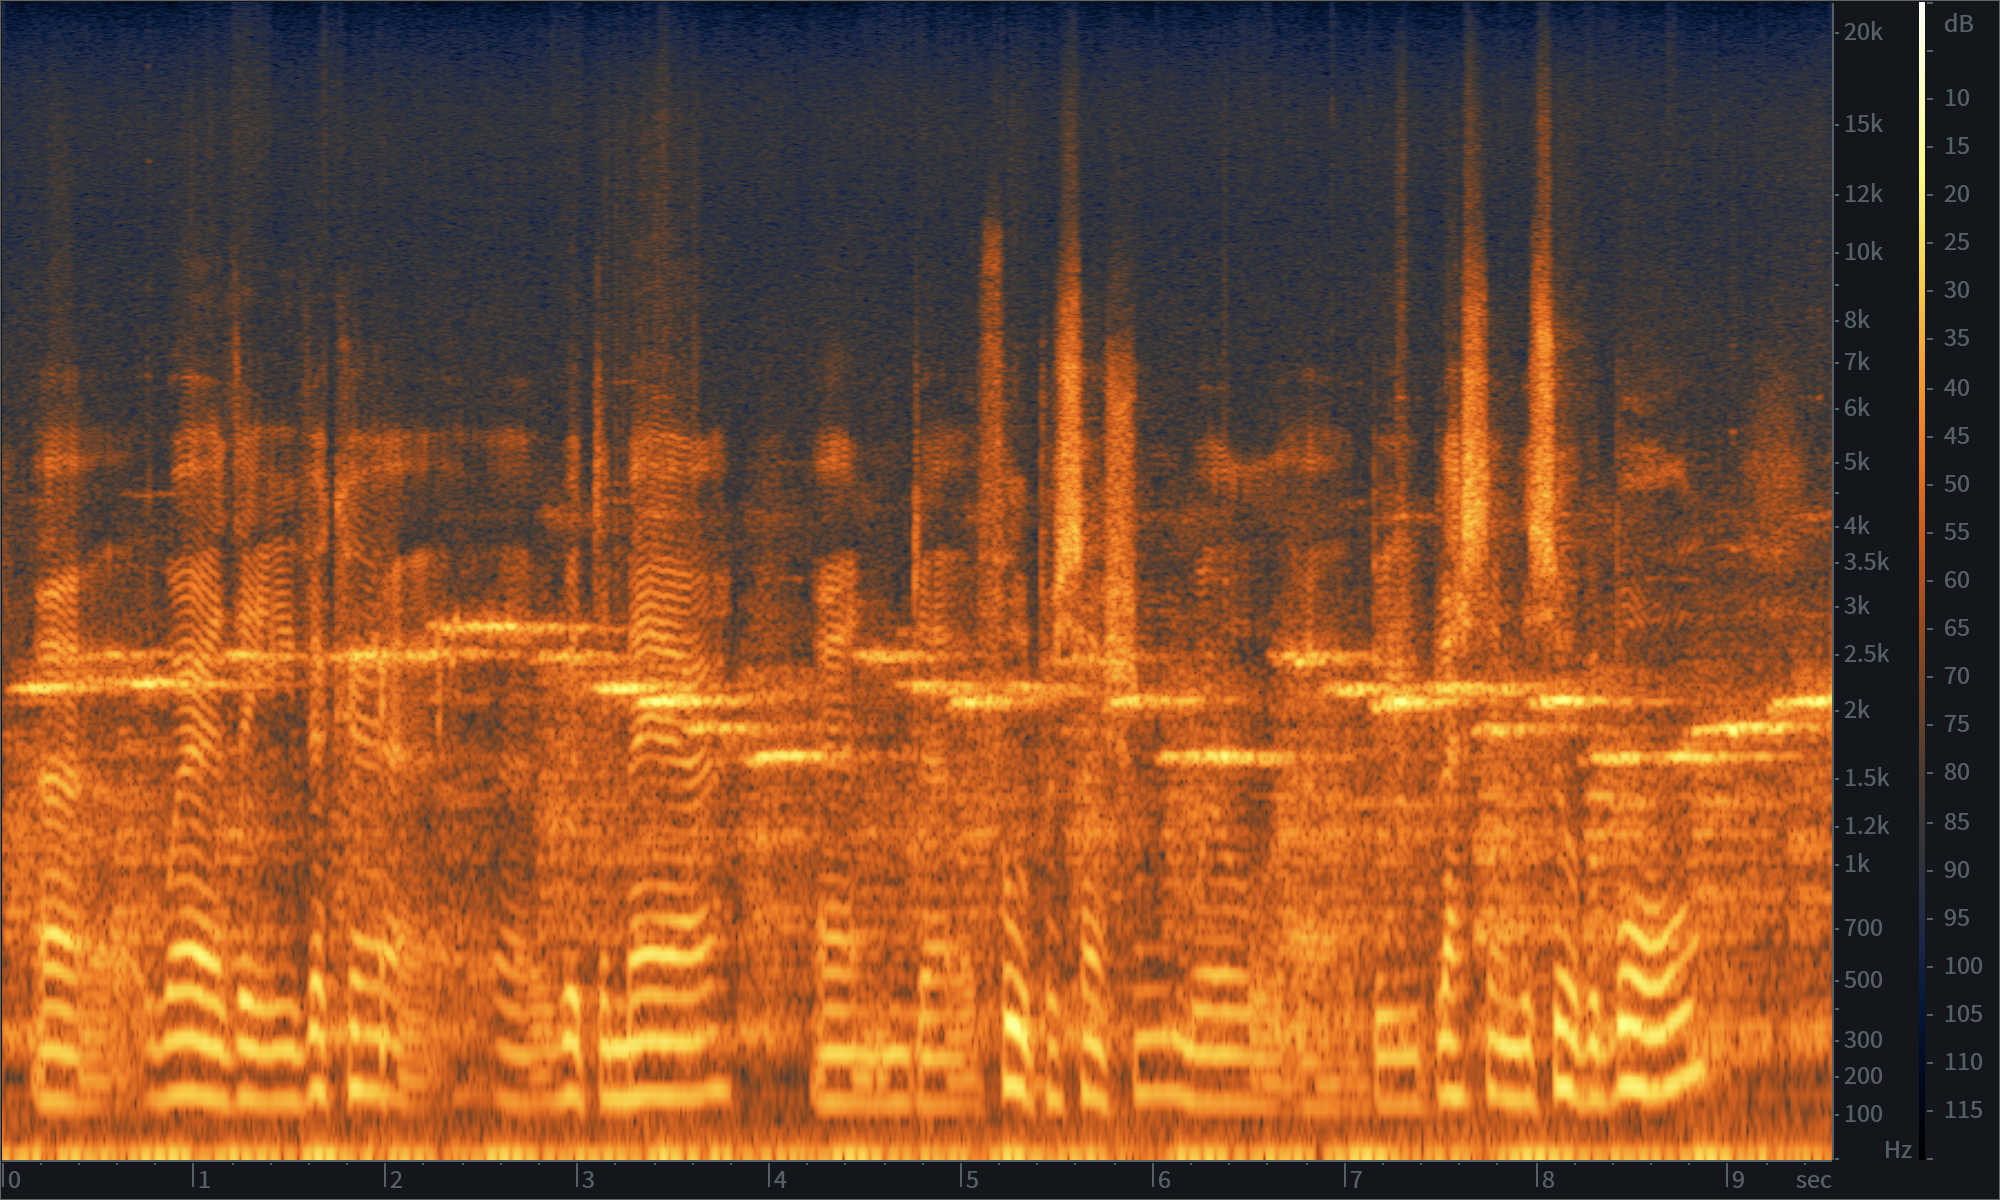 Audio spectrogram visualising a sound recording with hot white and yellow lines in a gradient to dark blue and black showing loud and quiet areas of the recording